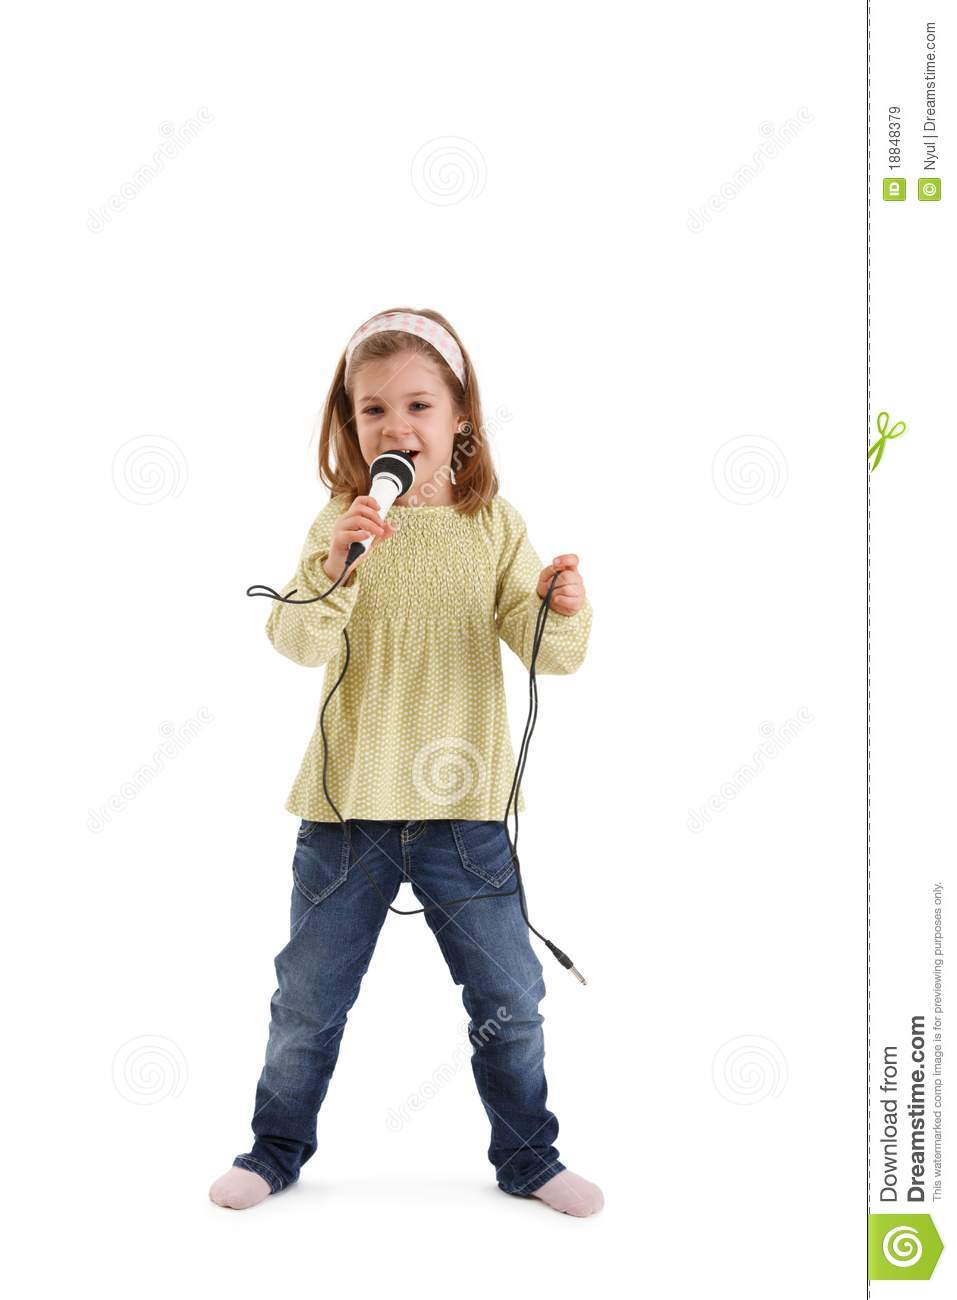 Little girl singing with microphone royalty free stock images image